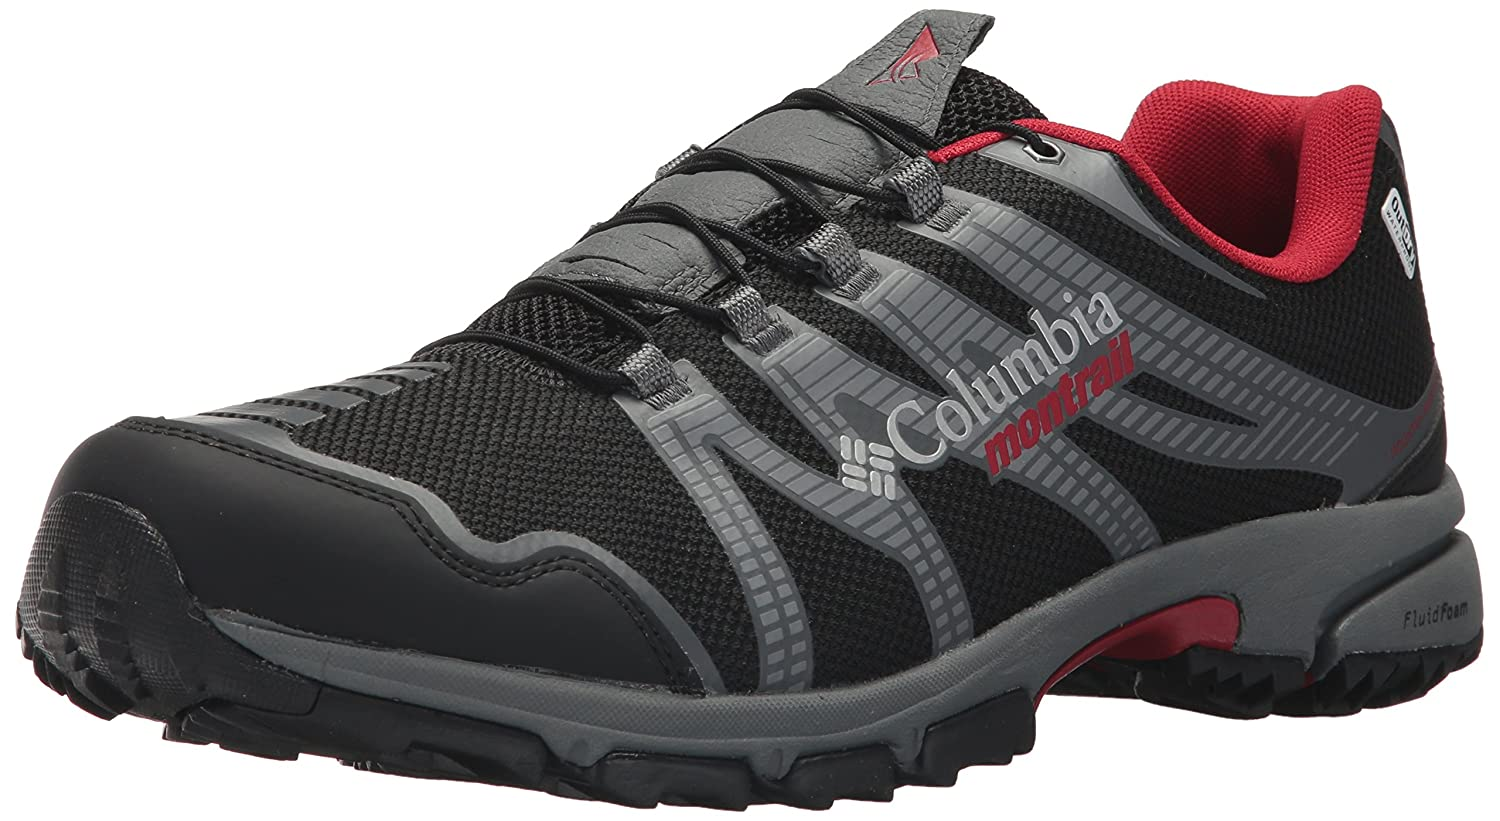 Columbia Montrail Men's Mountain Masochist IV Outdry Trail Running Shoe 1796021